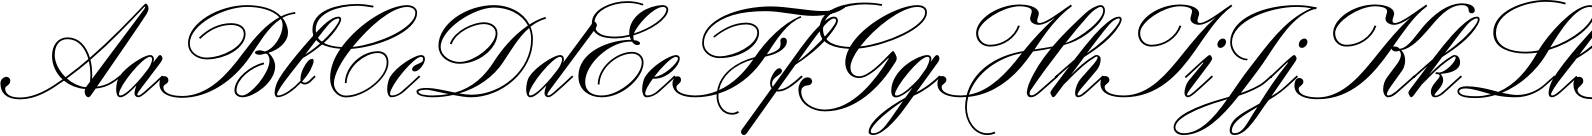 Gillray Pro Light Font